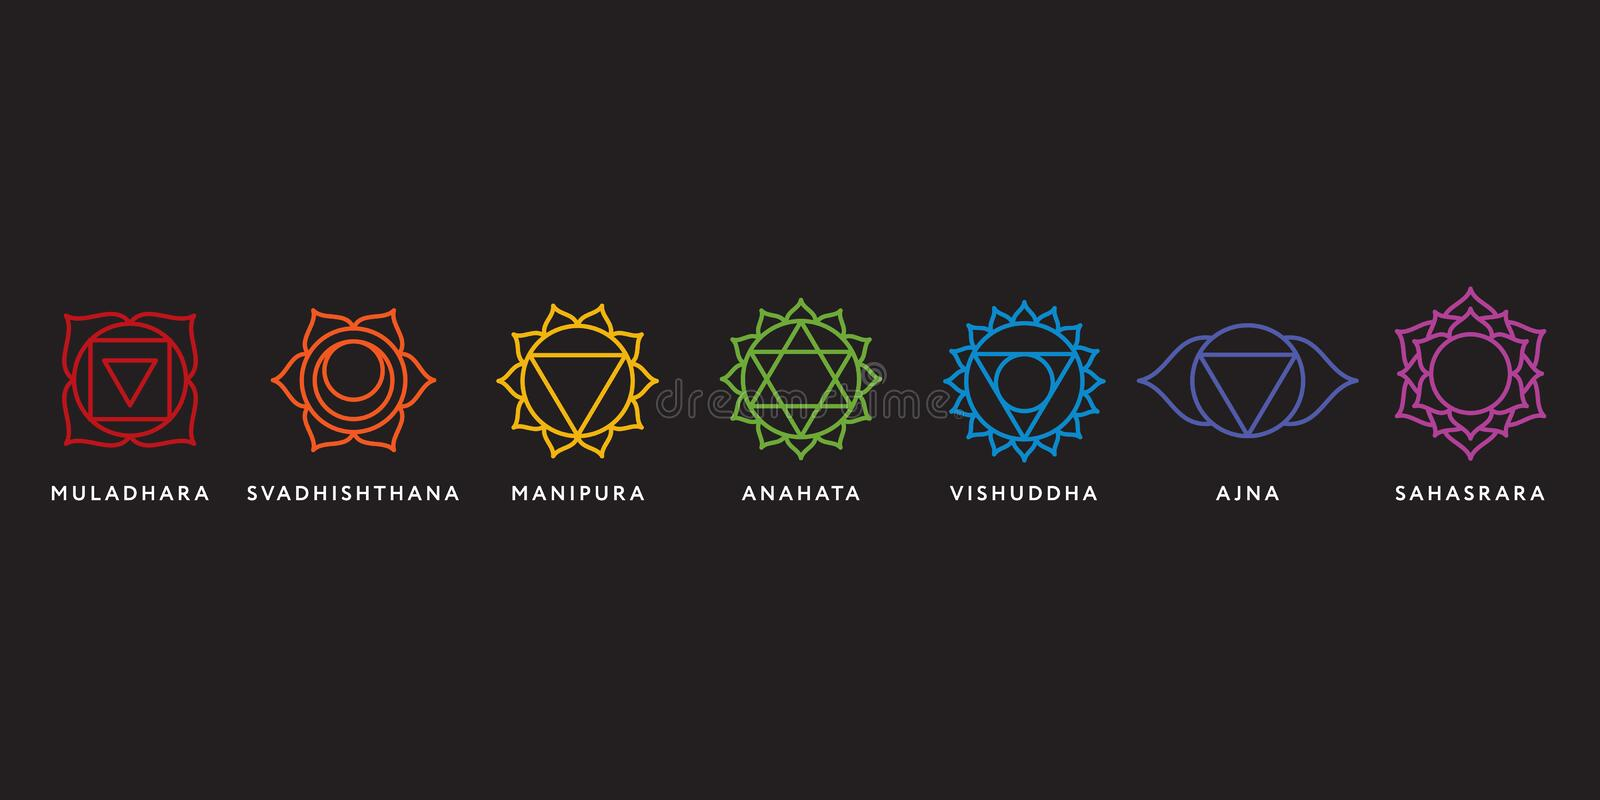 Set of seven chakra symbols with names. Vector royalty free illustration